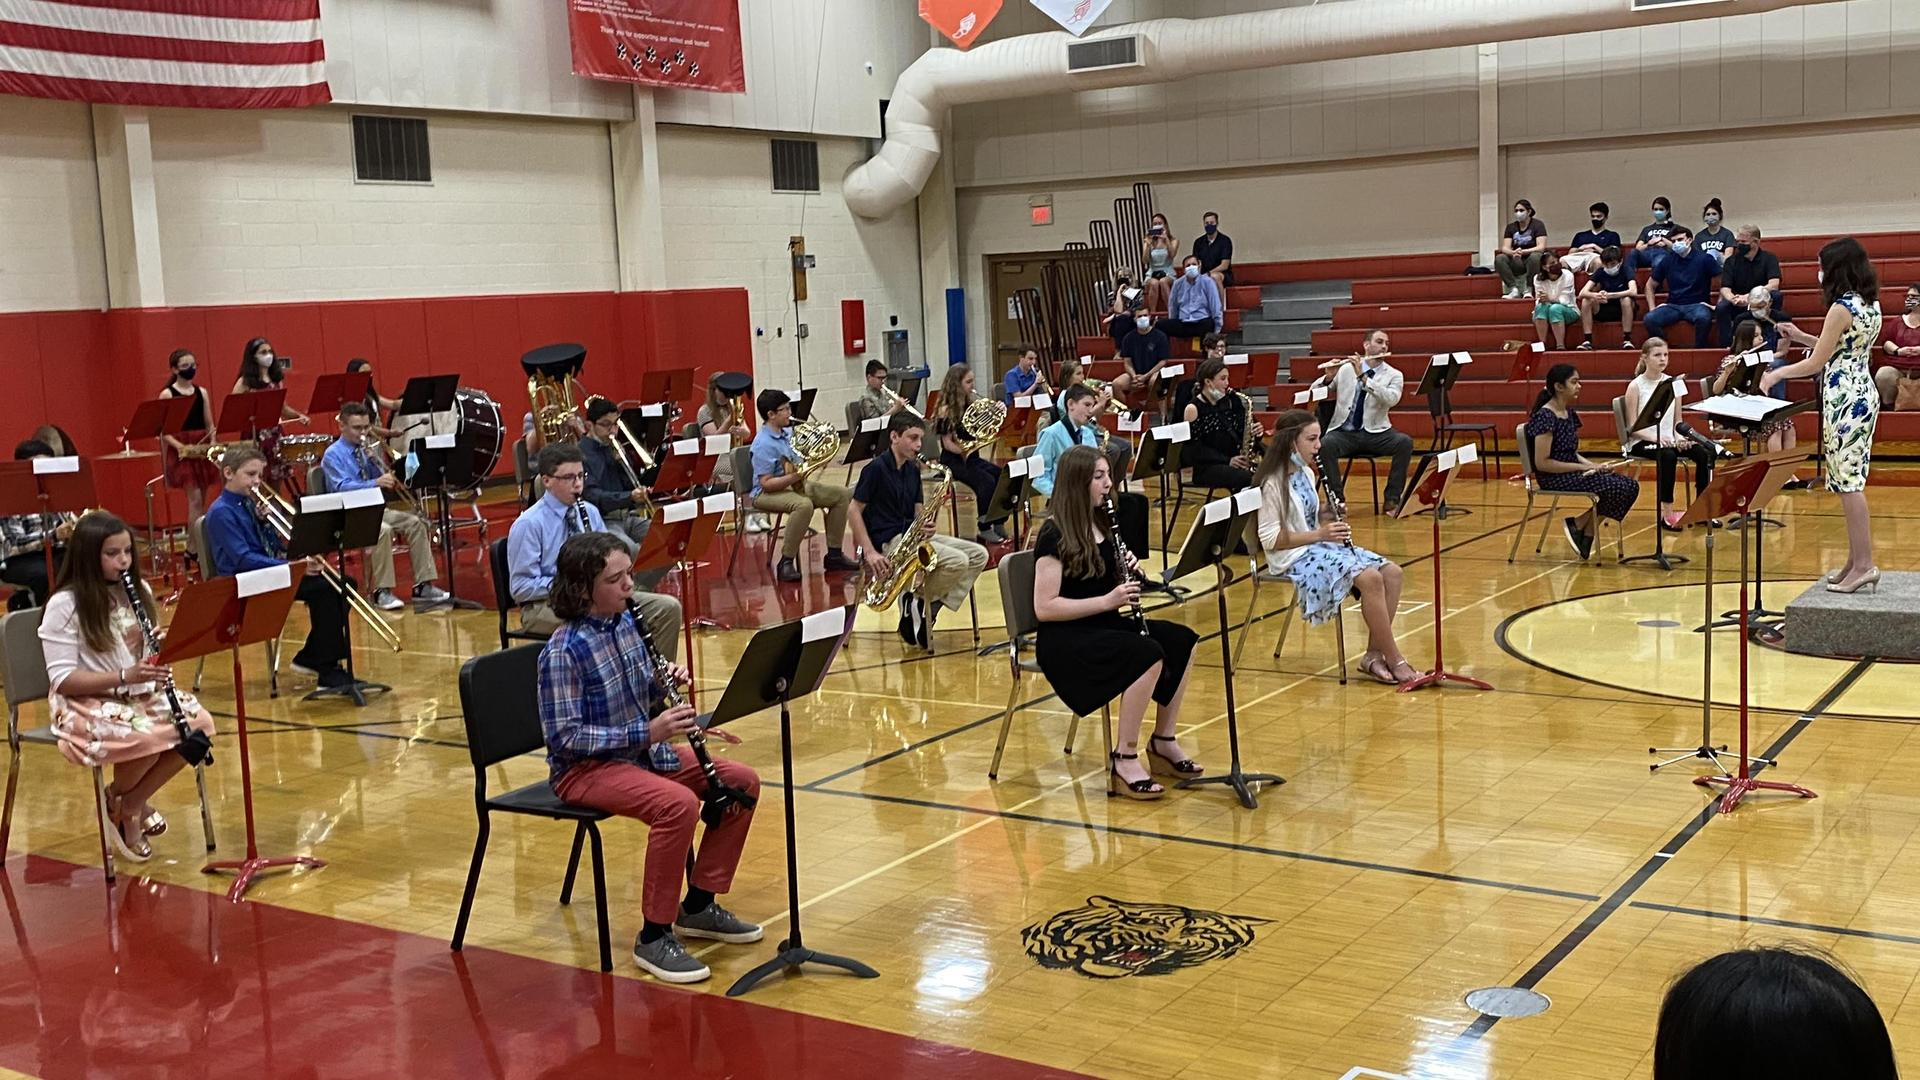 A group of band students playing instruments in the Benjamin gym